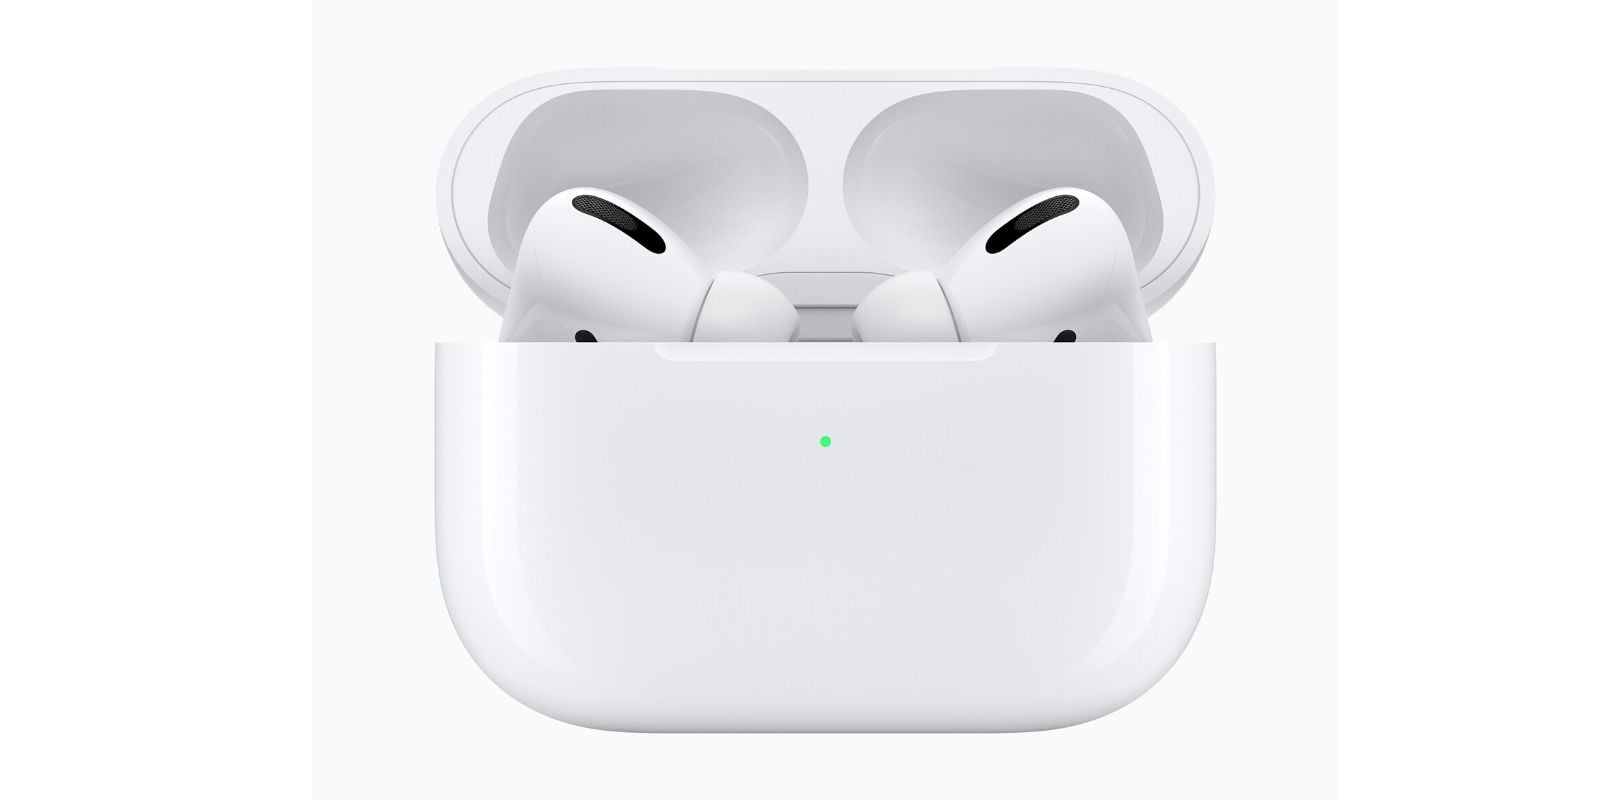 New AirPods Pro design